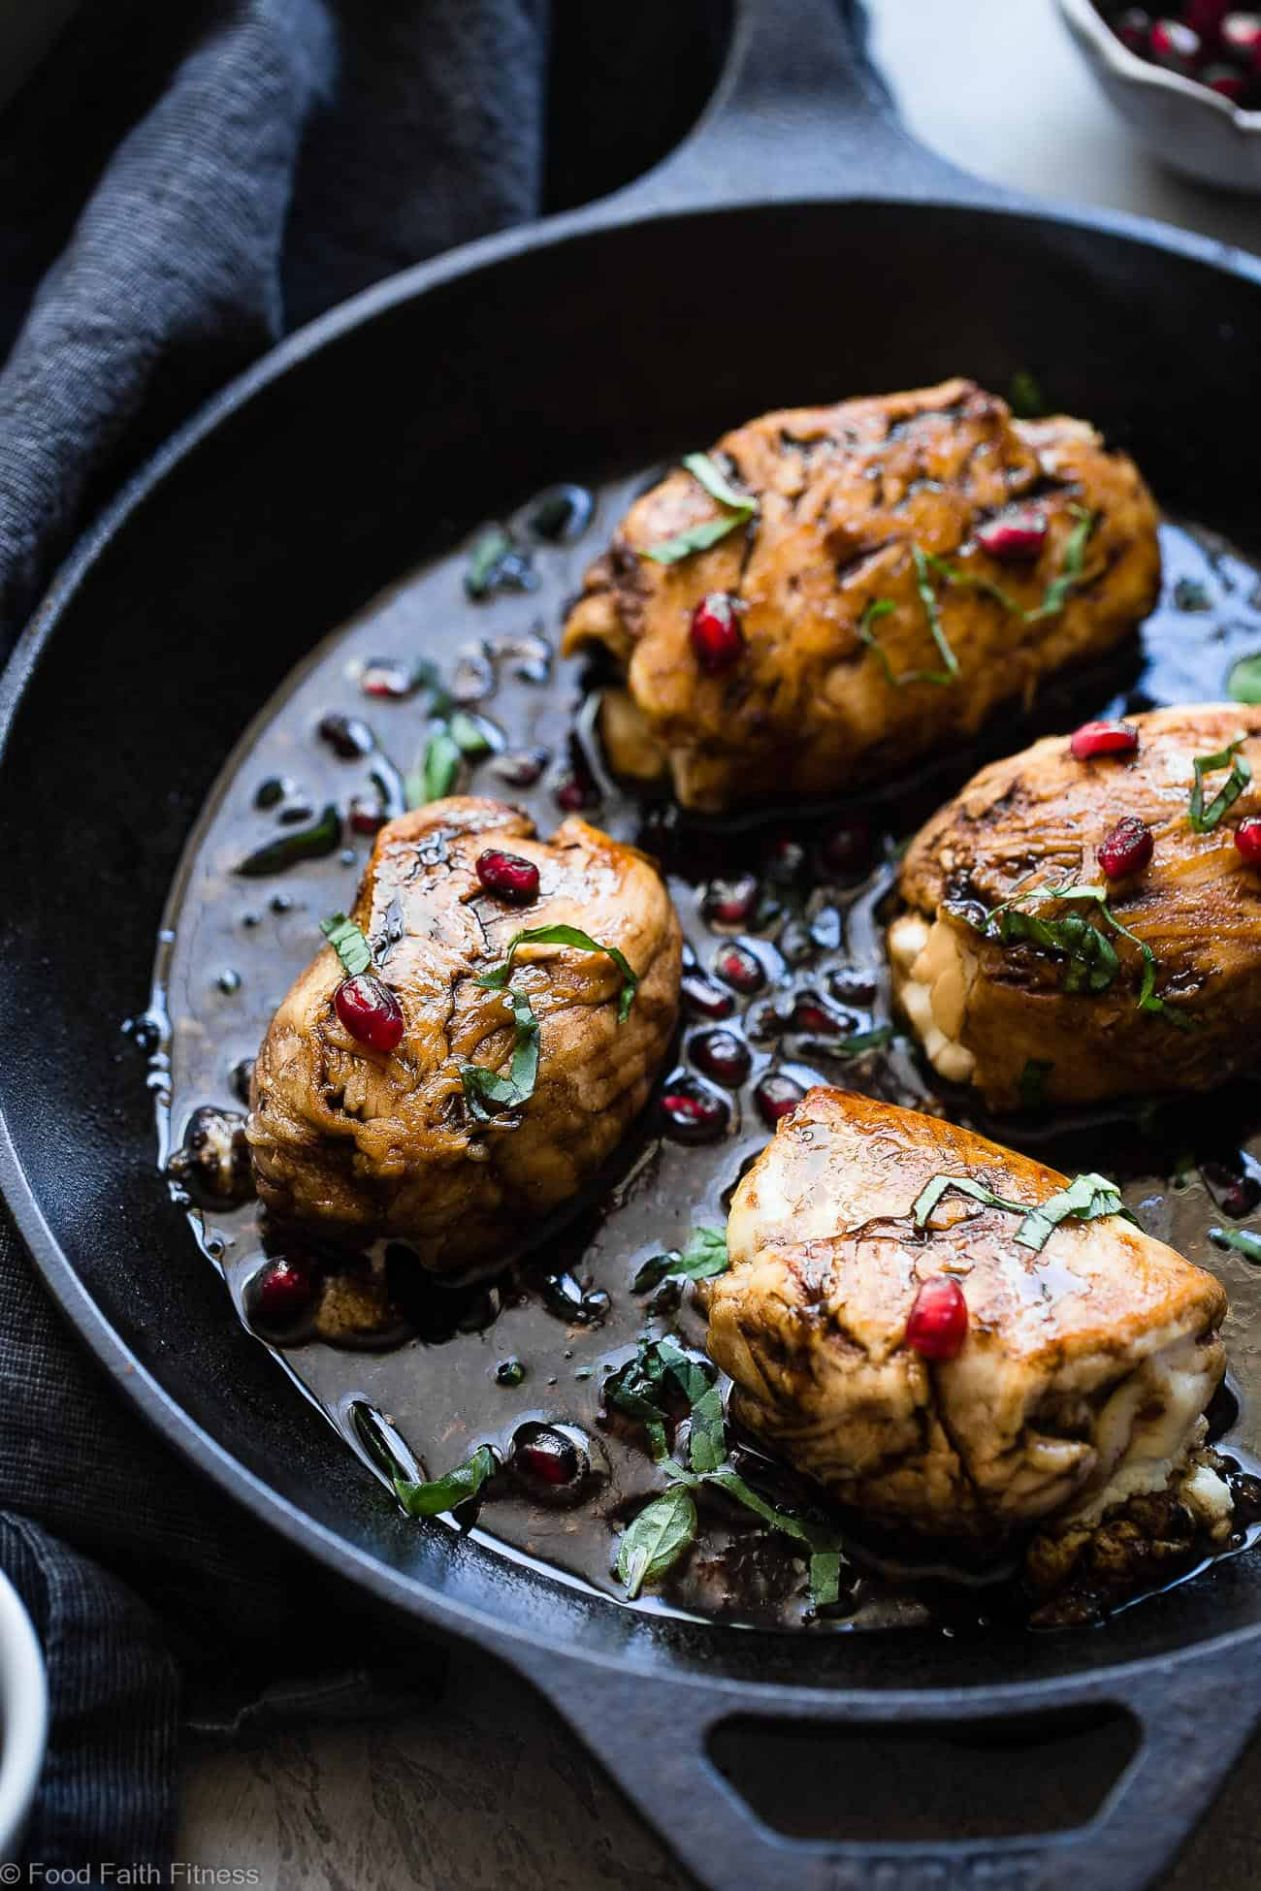 Baked Balsamic Goat Cheese Stuffed Pomegranate chicken | Food ..